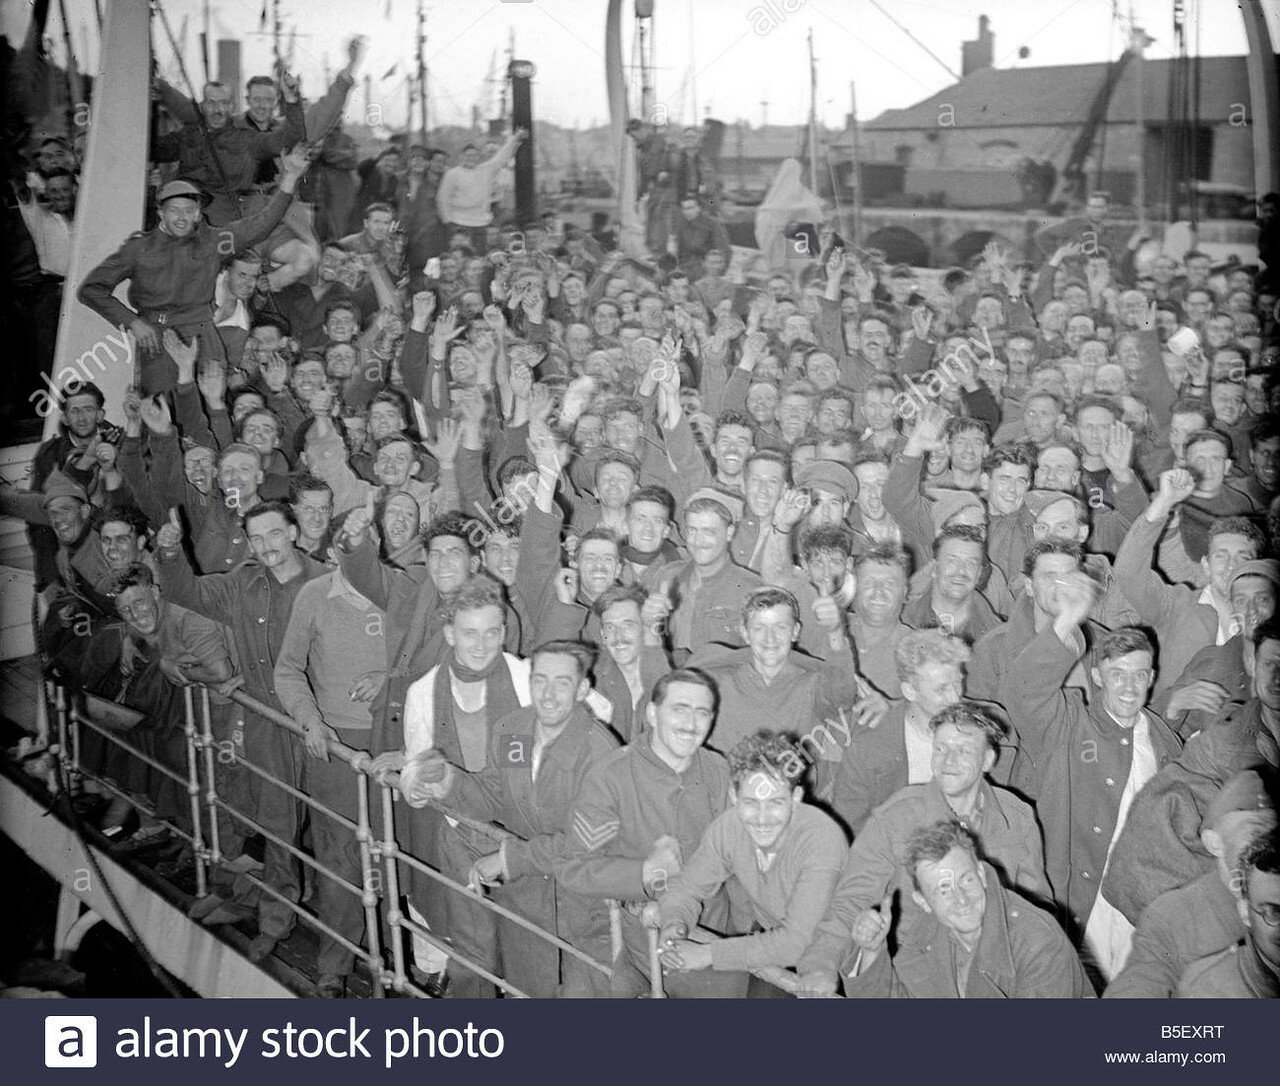 british-expeditionary-forces-return-from-dunkirk-june-19401310w318f-B5EXRT.jpg